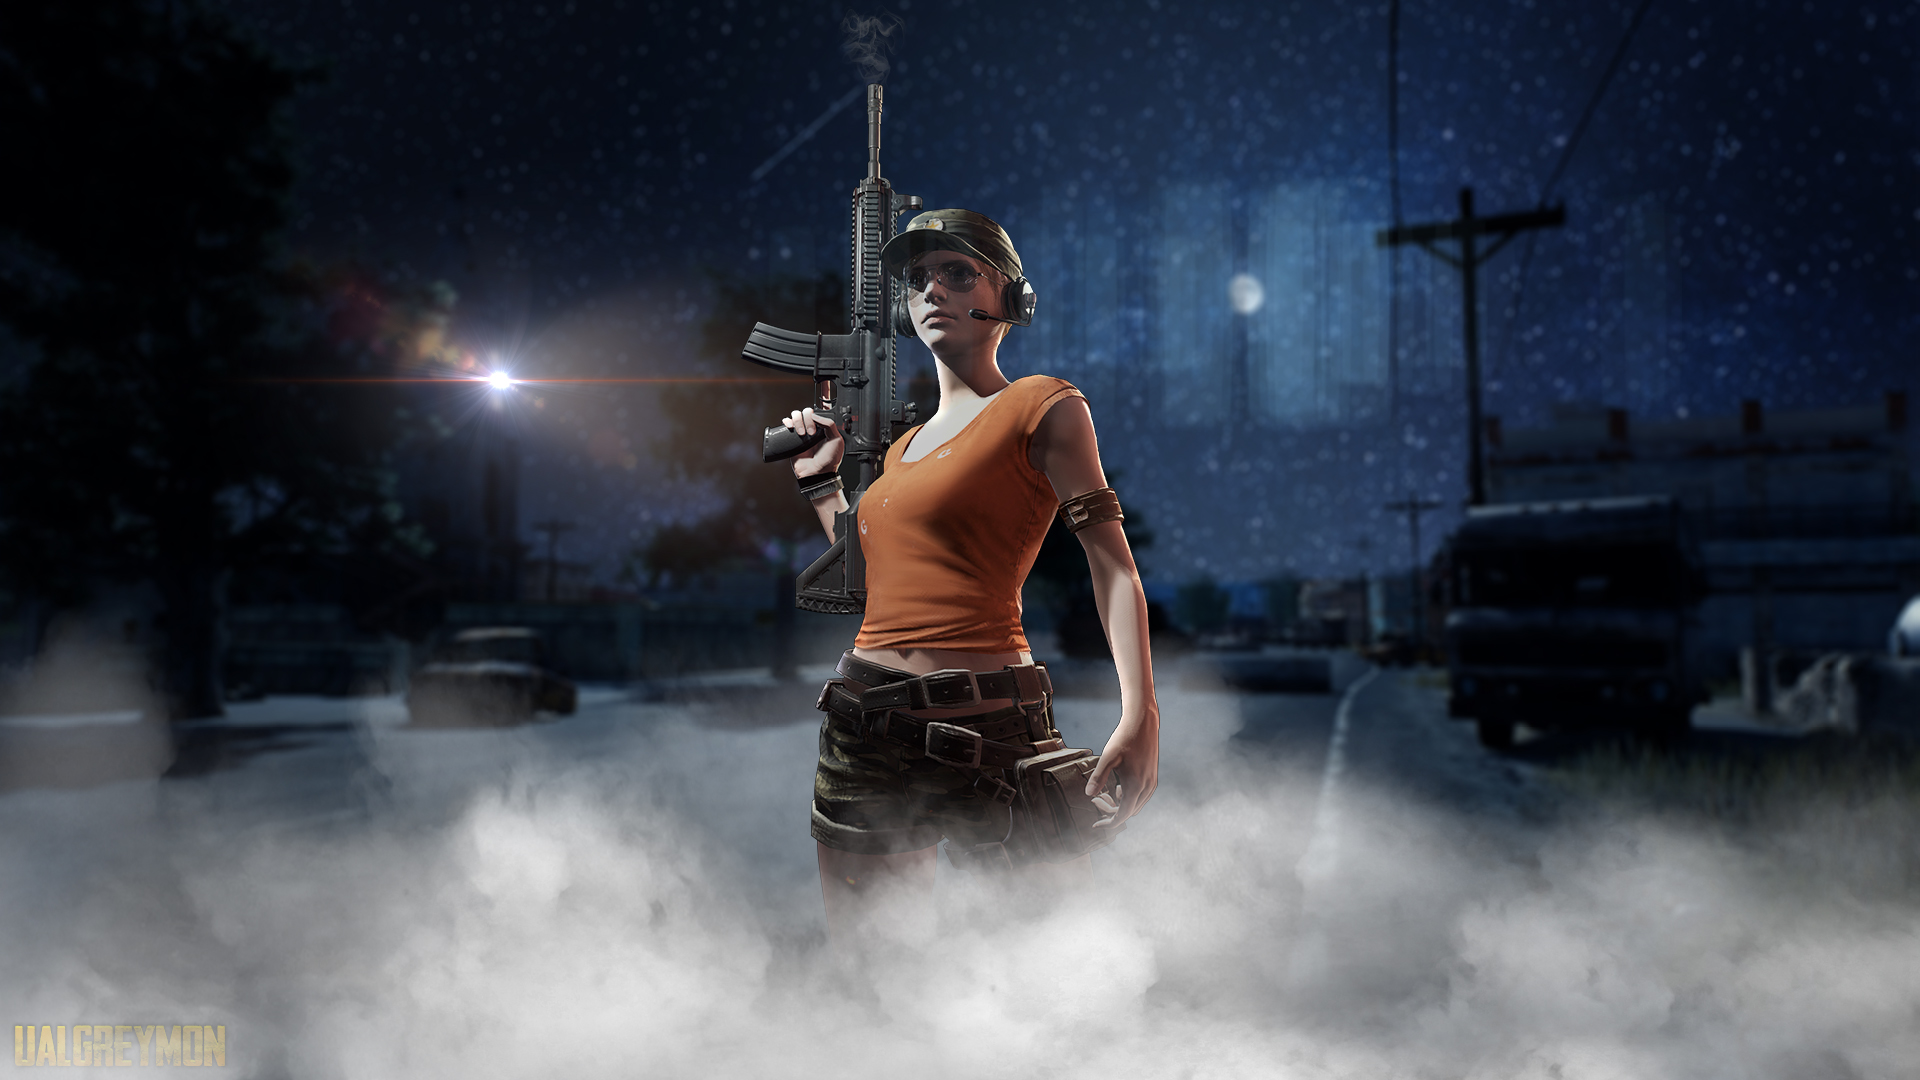 Pubg Wallpaper Hd Pic: Pubg Night, HD Games, 4k Wallpapers, Images, Backgrounds